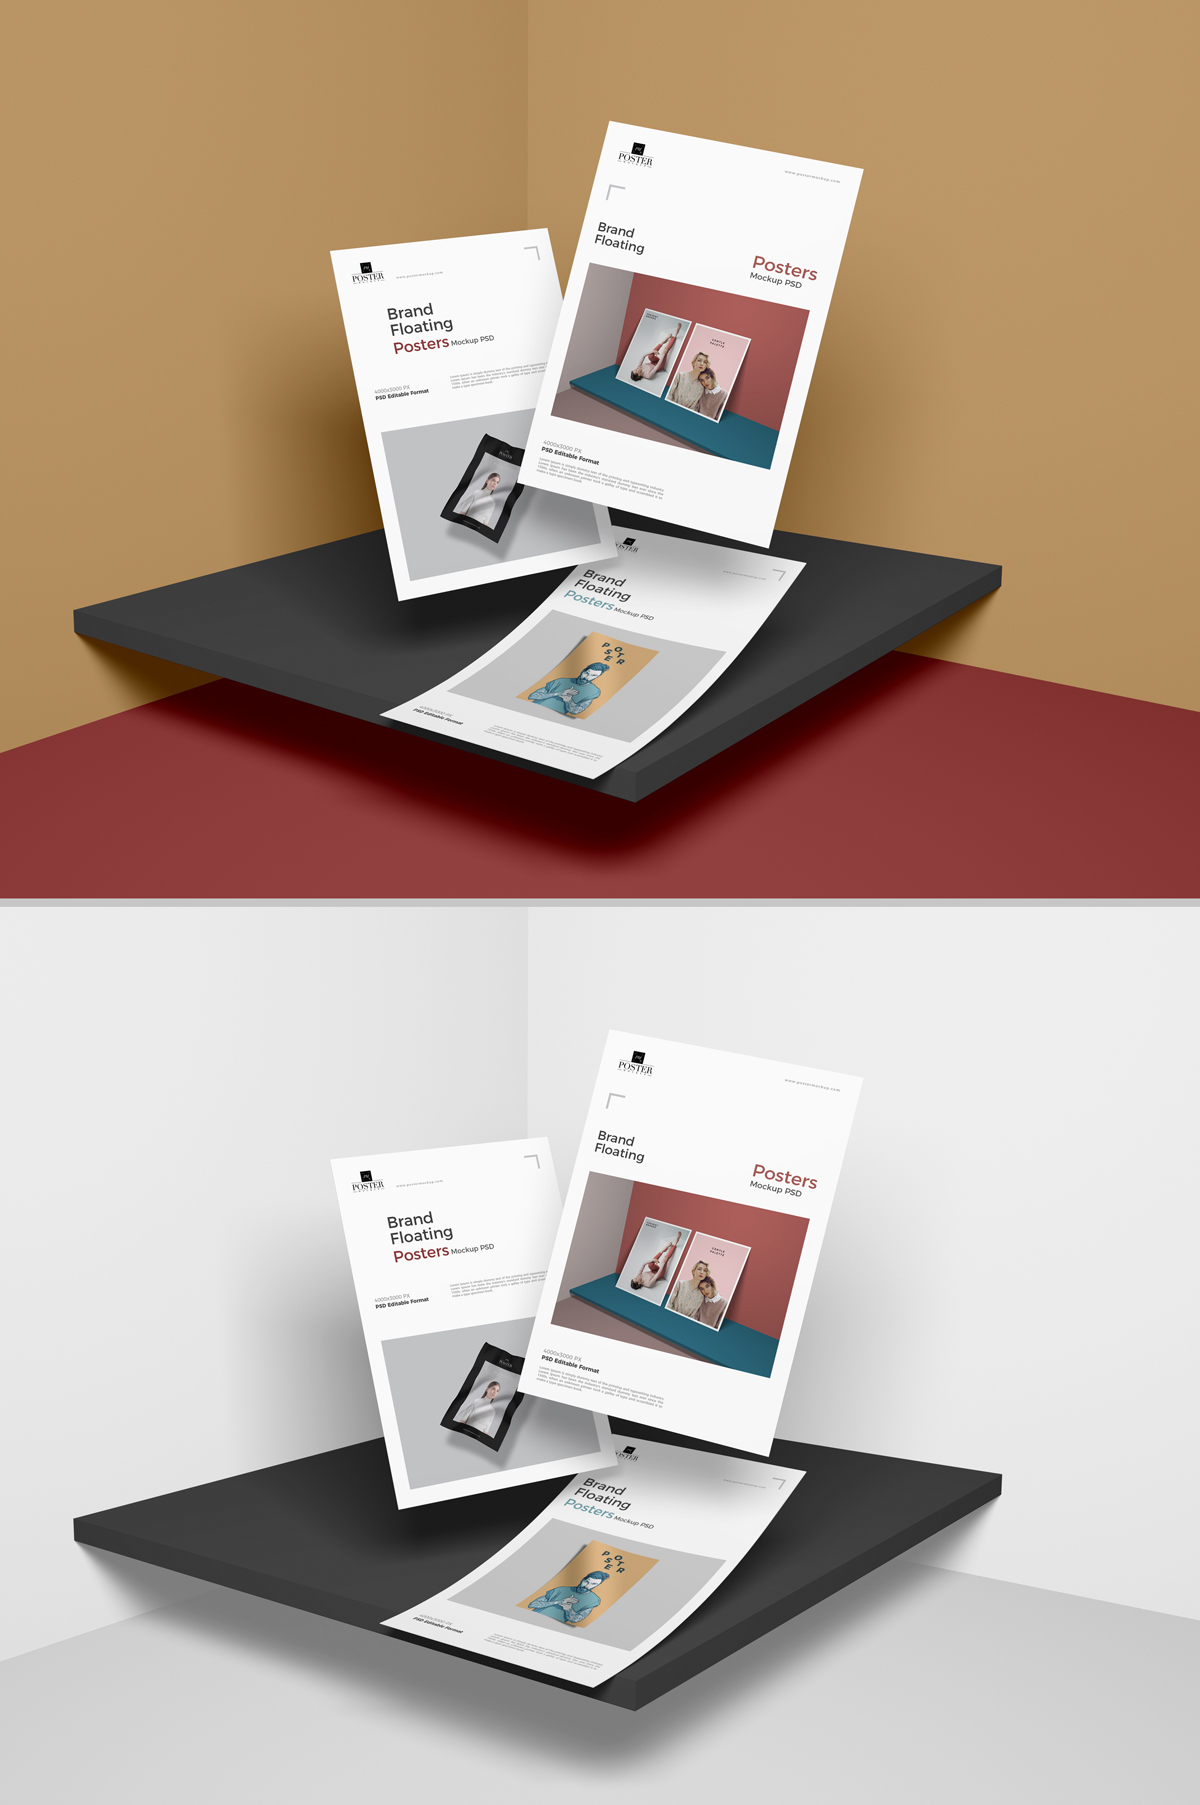 Free-Brand-Floating-Posters-Mockup-For-Presentation